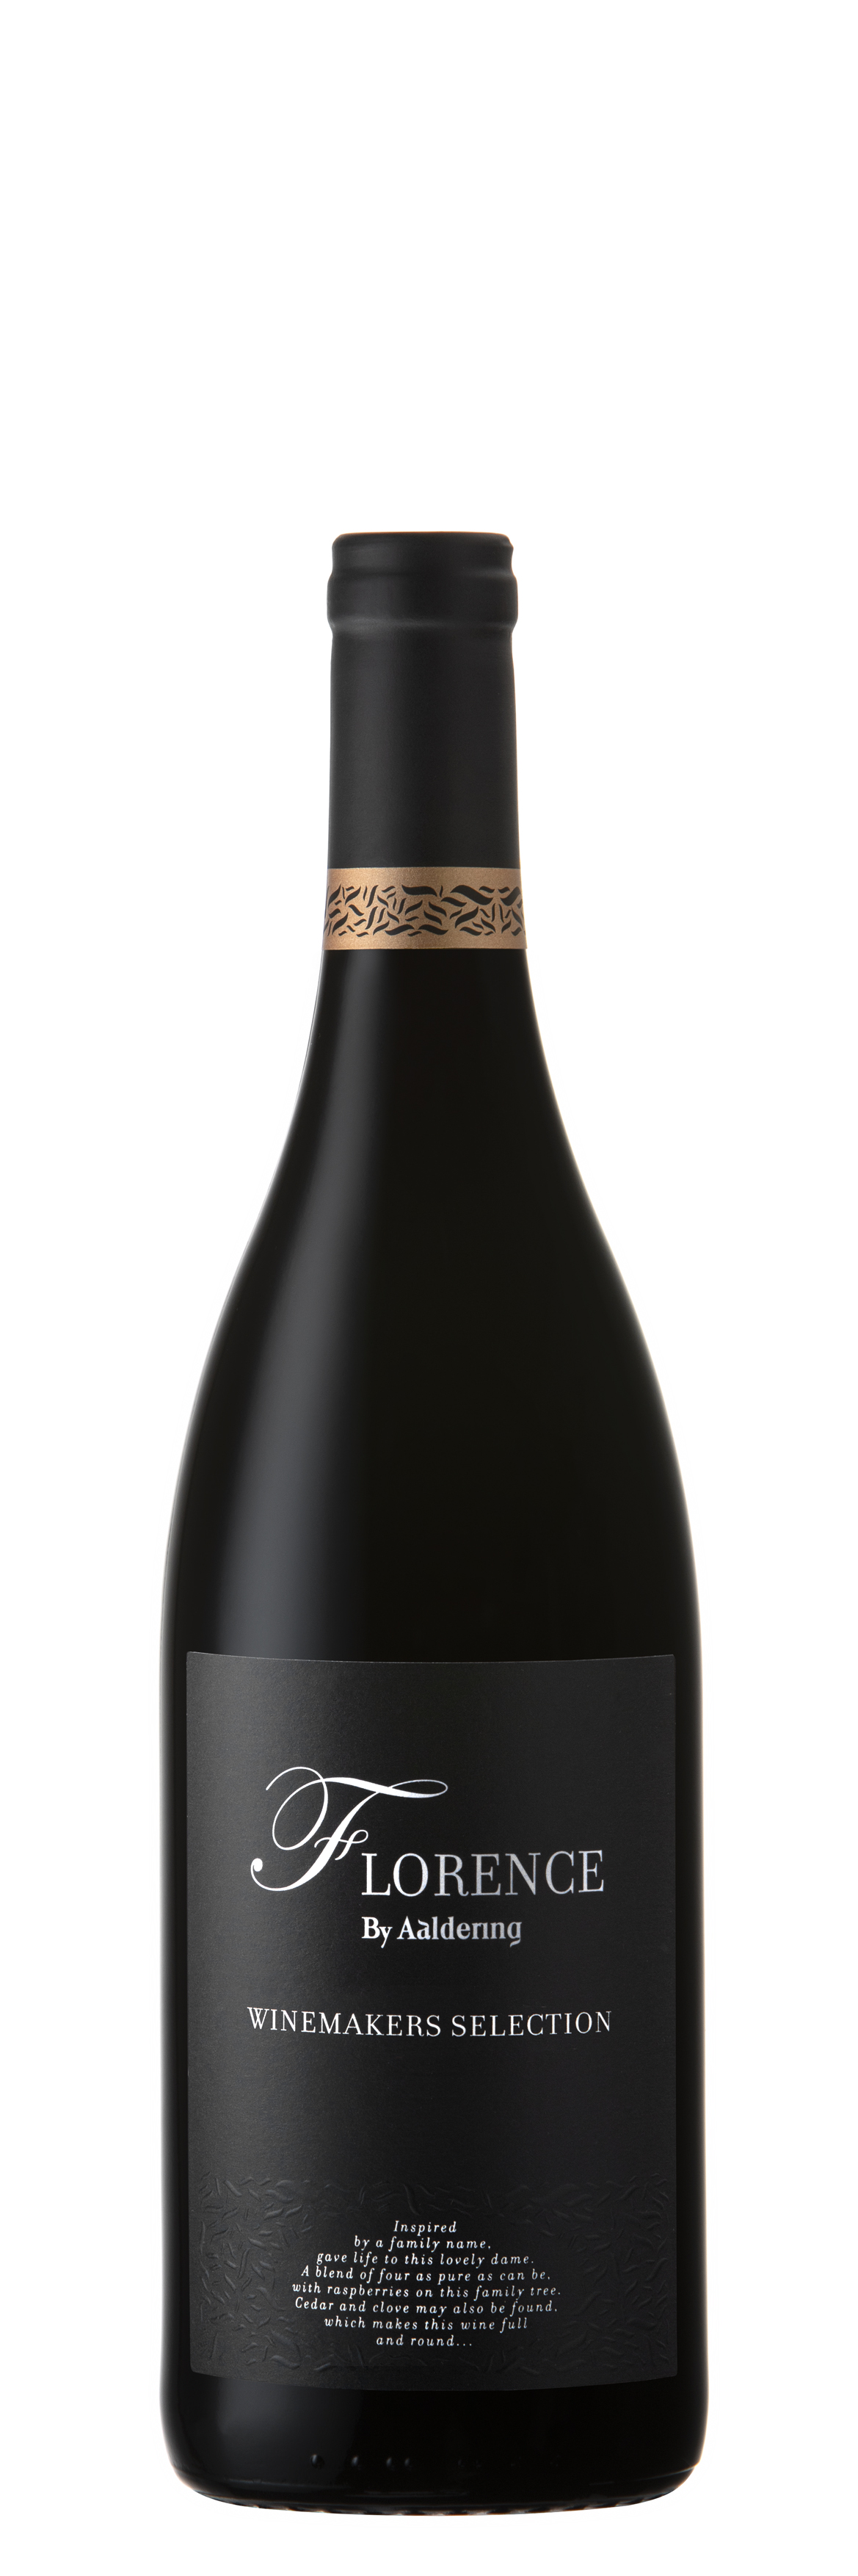 Aaldering Florence Winemakers Selection 2019